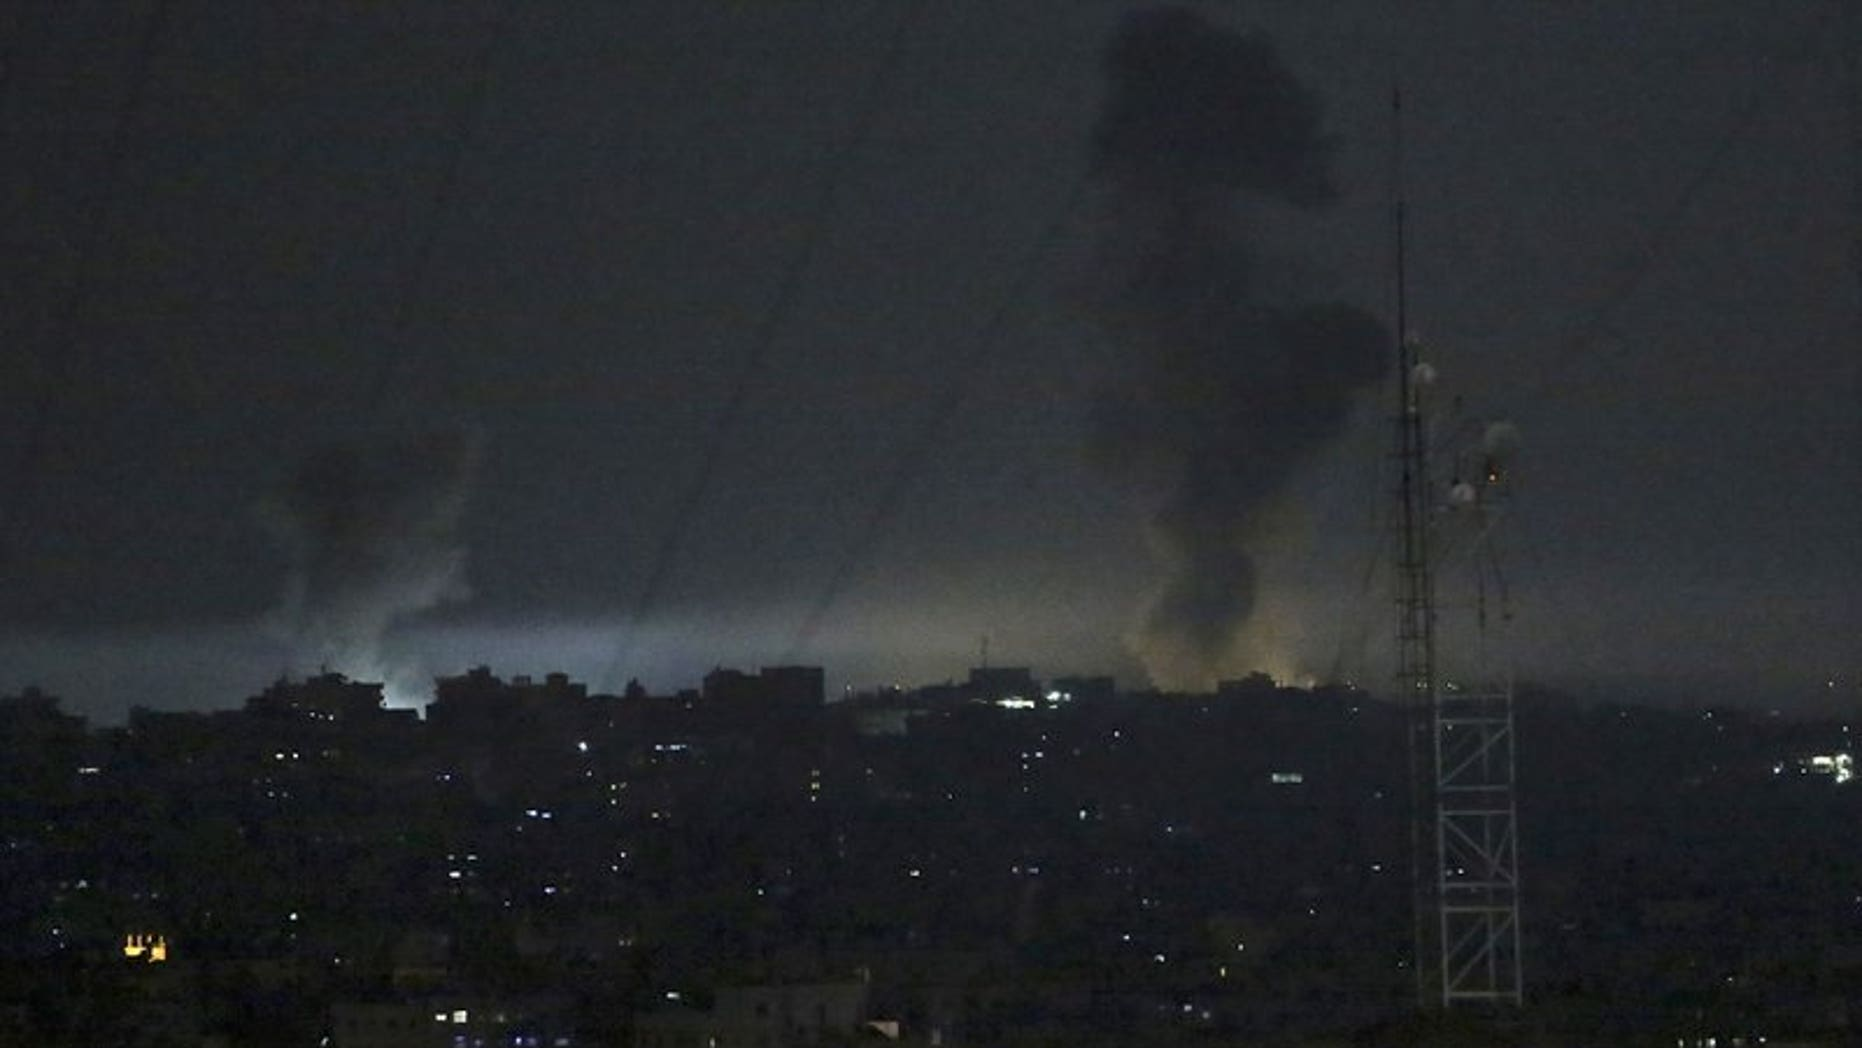 Smoke rises following an Israeli strikes on Gaza City, early Wednesday, May 30, 2018. Palestinian militants in the Gaza Strip fired at least 50 rockets and mortars into southern Israel on Tuesday, the largest barrage since the 2014 war between Israel and Hamas.